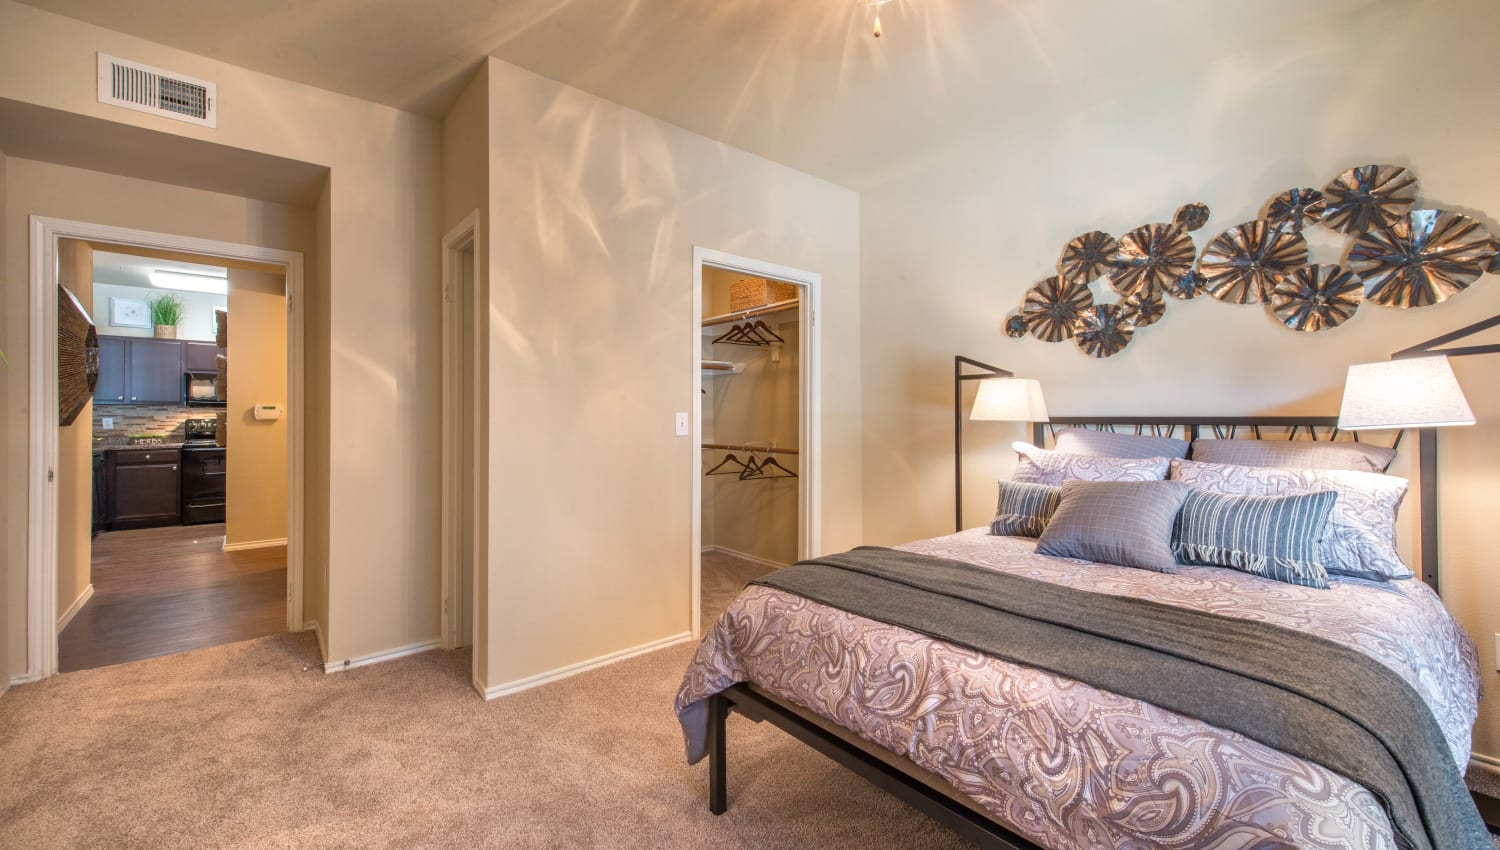 Classically furnished master bedroom in a model apartment at The Ranch at Shadow Lake in Houston, Texas